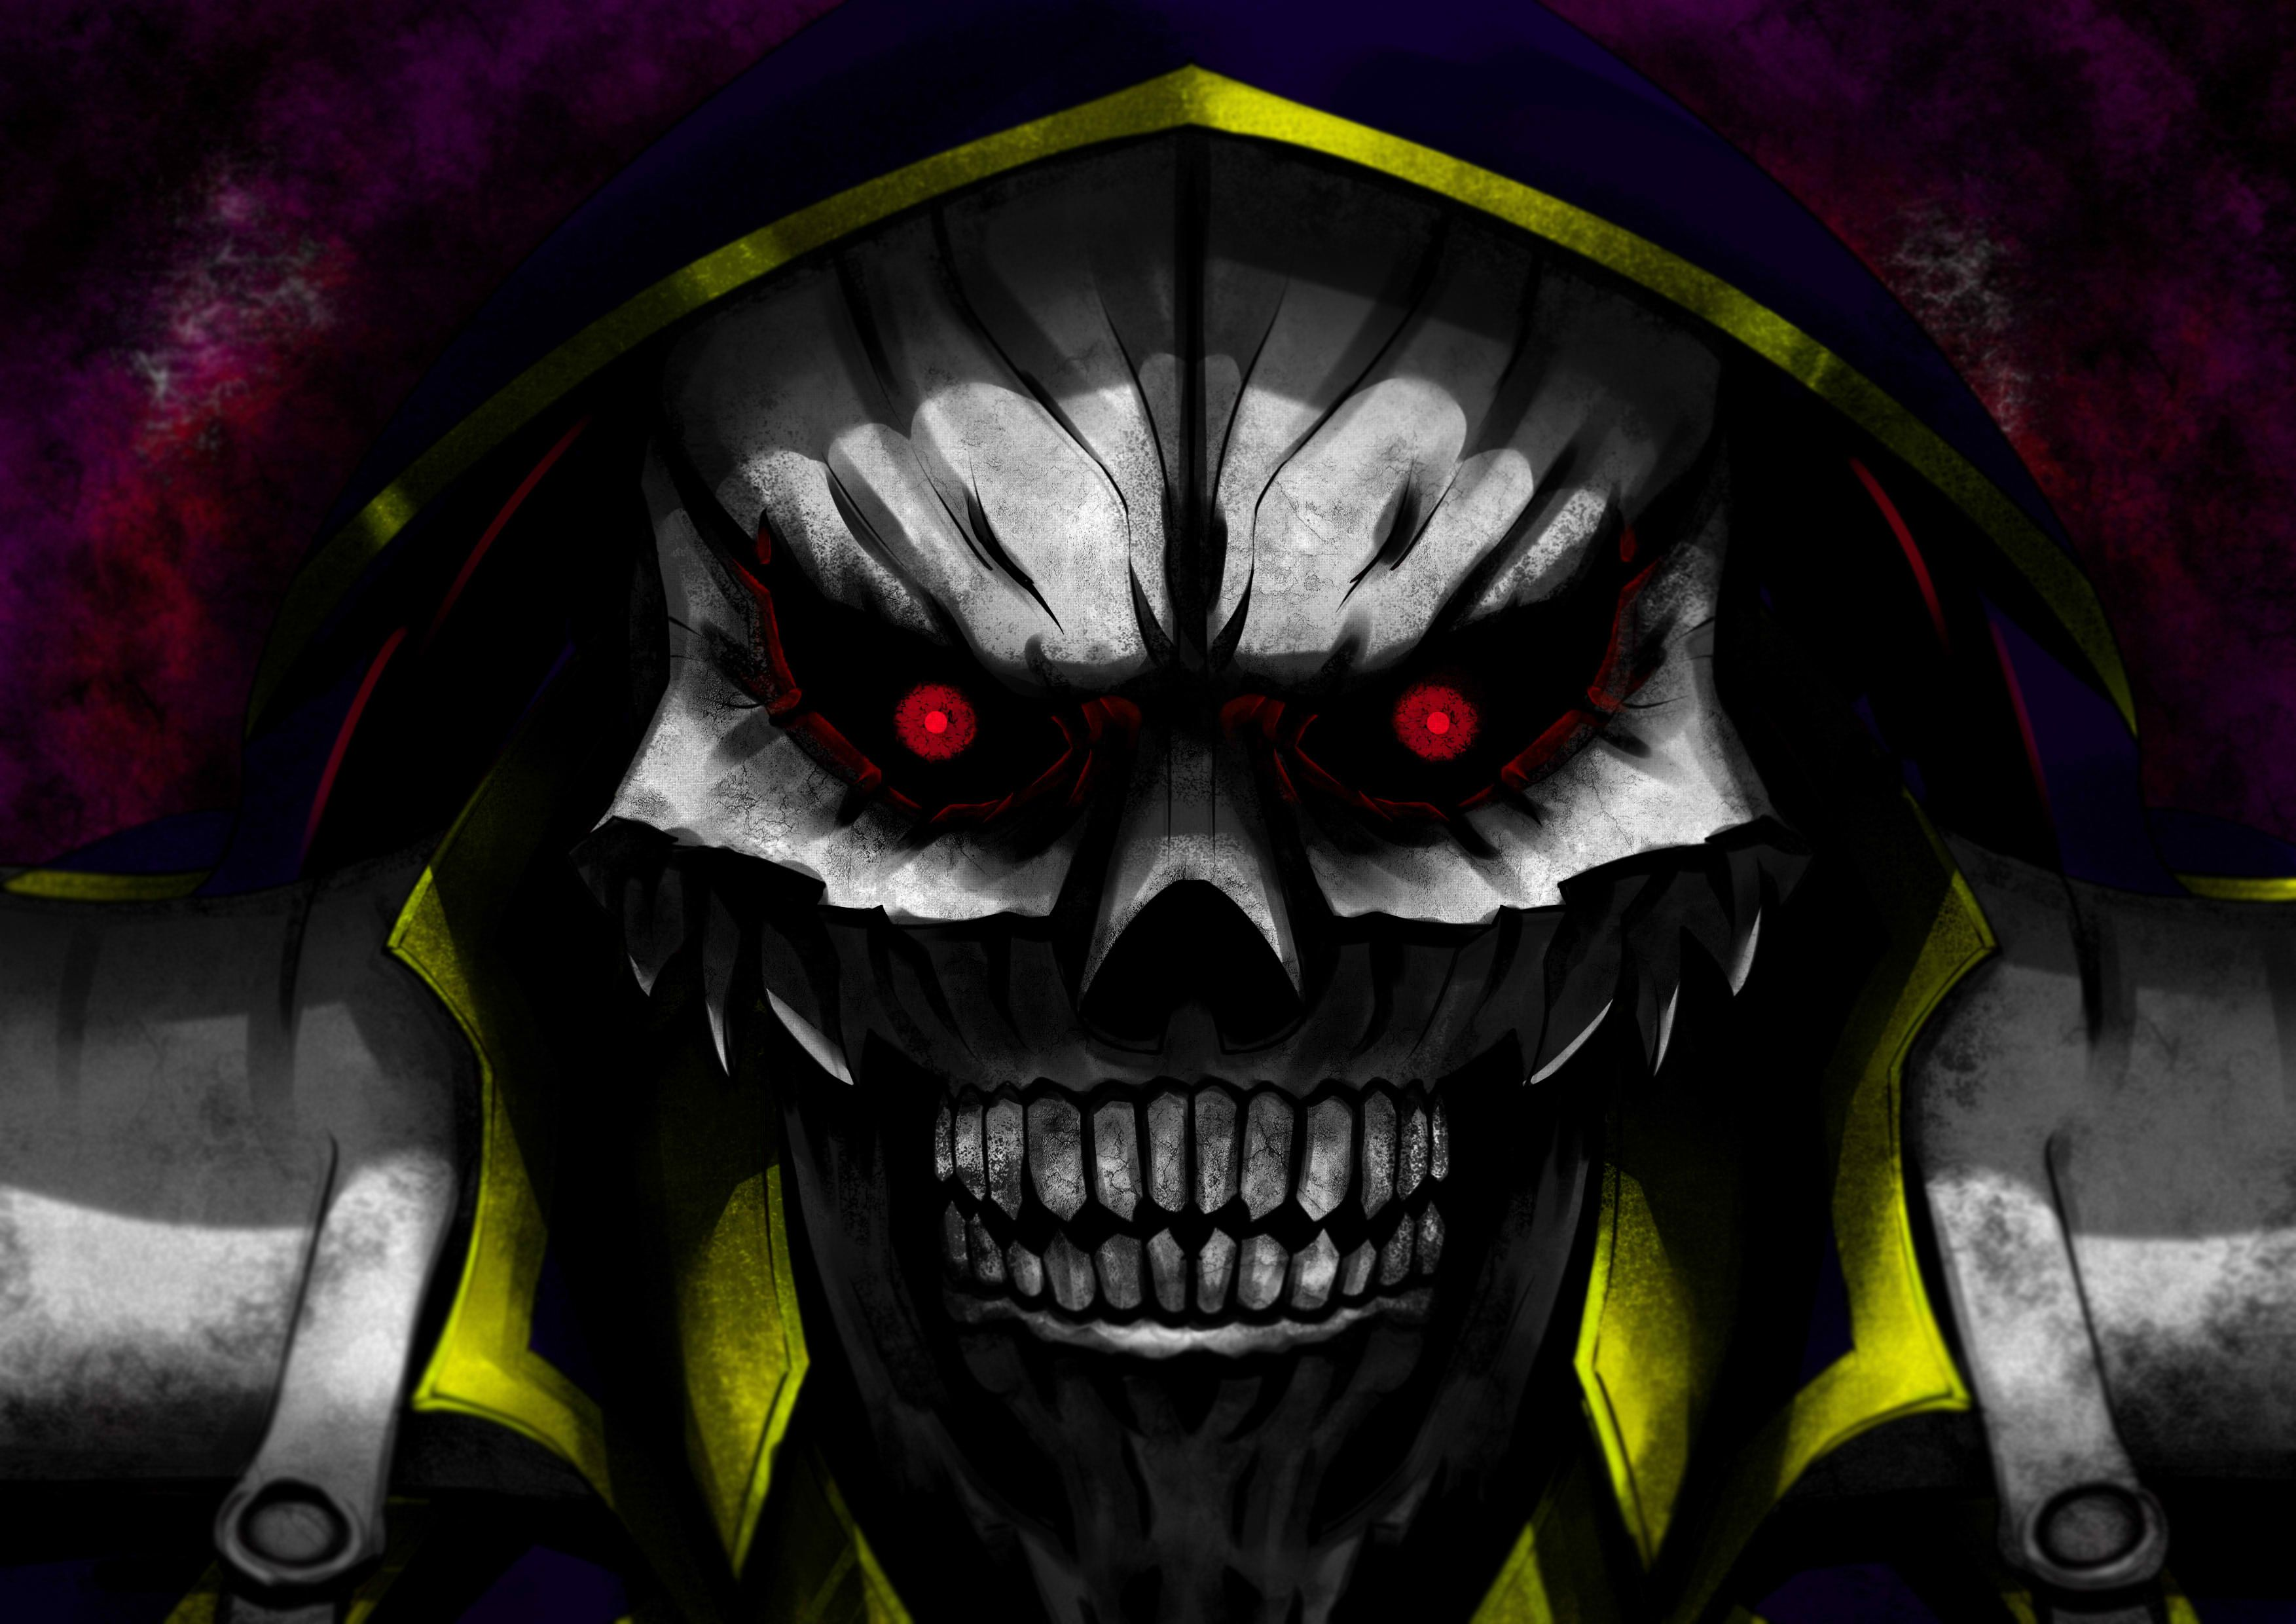 Ainz Ooal Gown Computer Wallpapers Desktop Backgrounds 3507x2480 Id 649373 Anime Wallpaper Backgrounds Japanese Novels